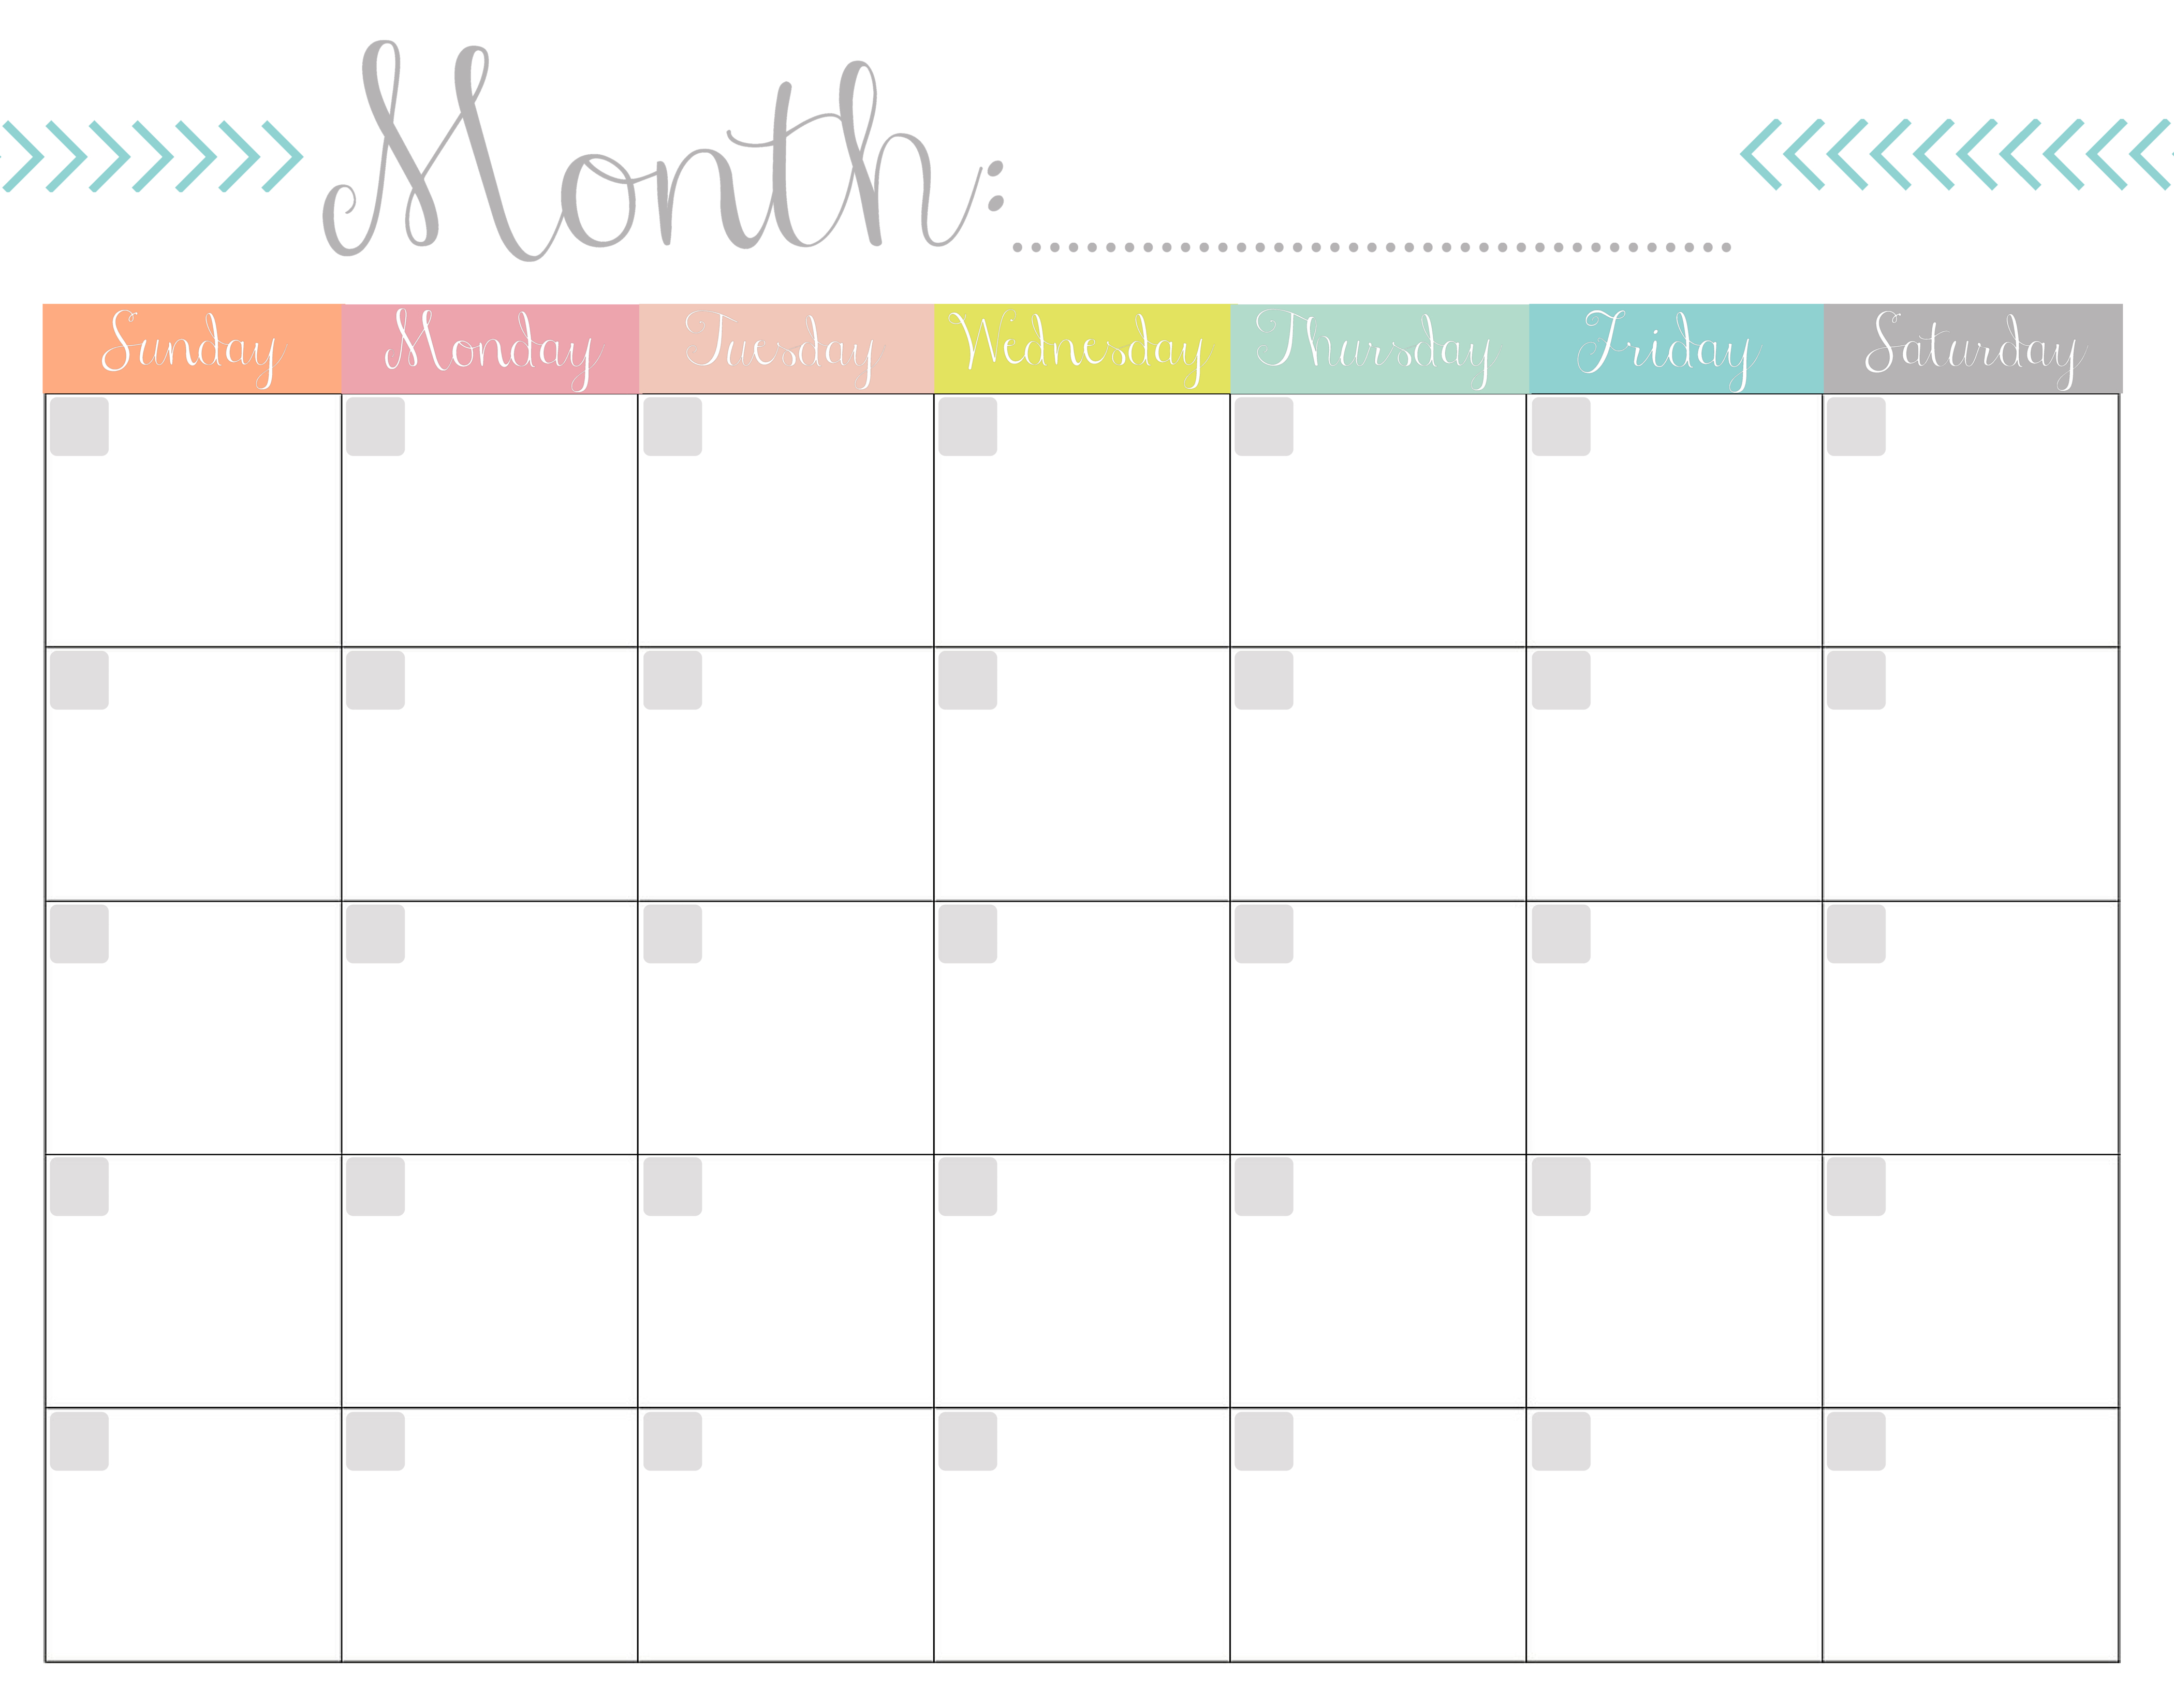 Printable Monthly Calendar Free   Hauck Mansion